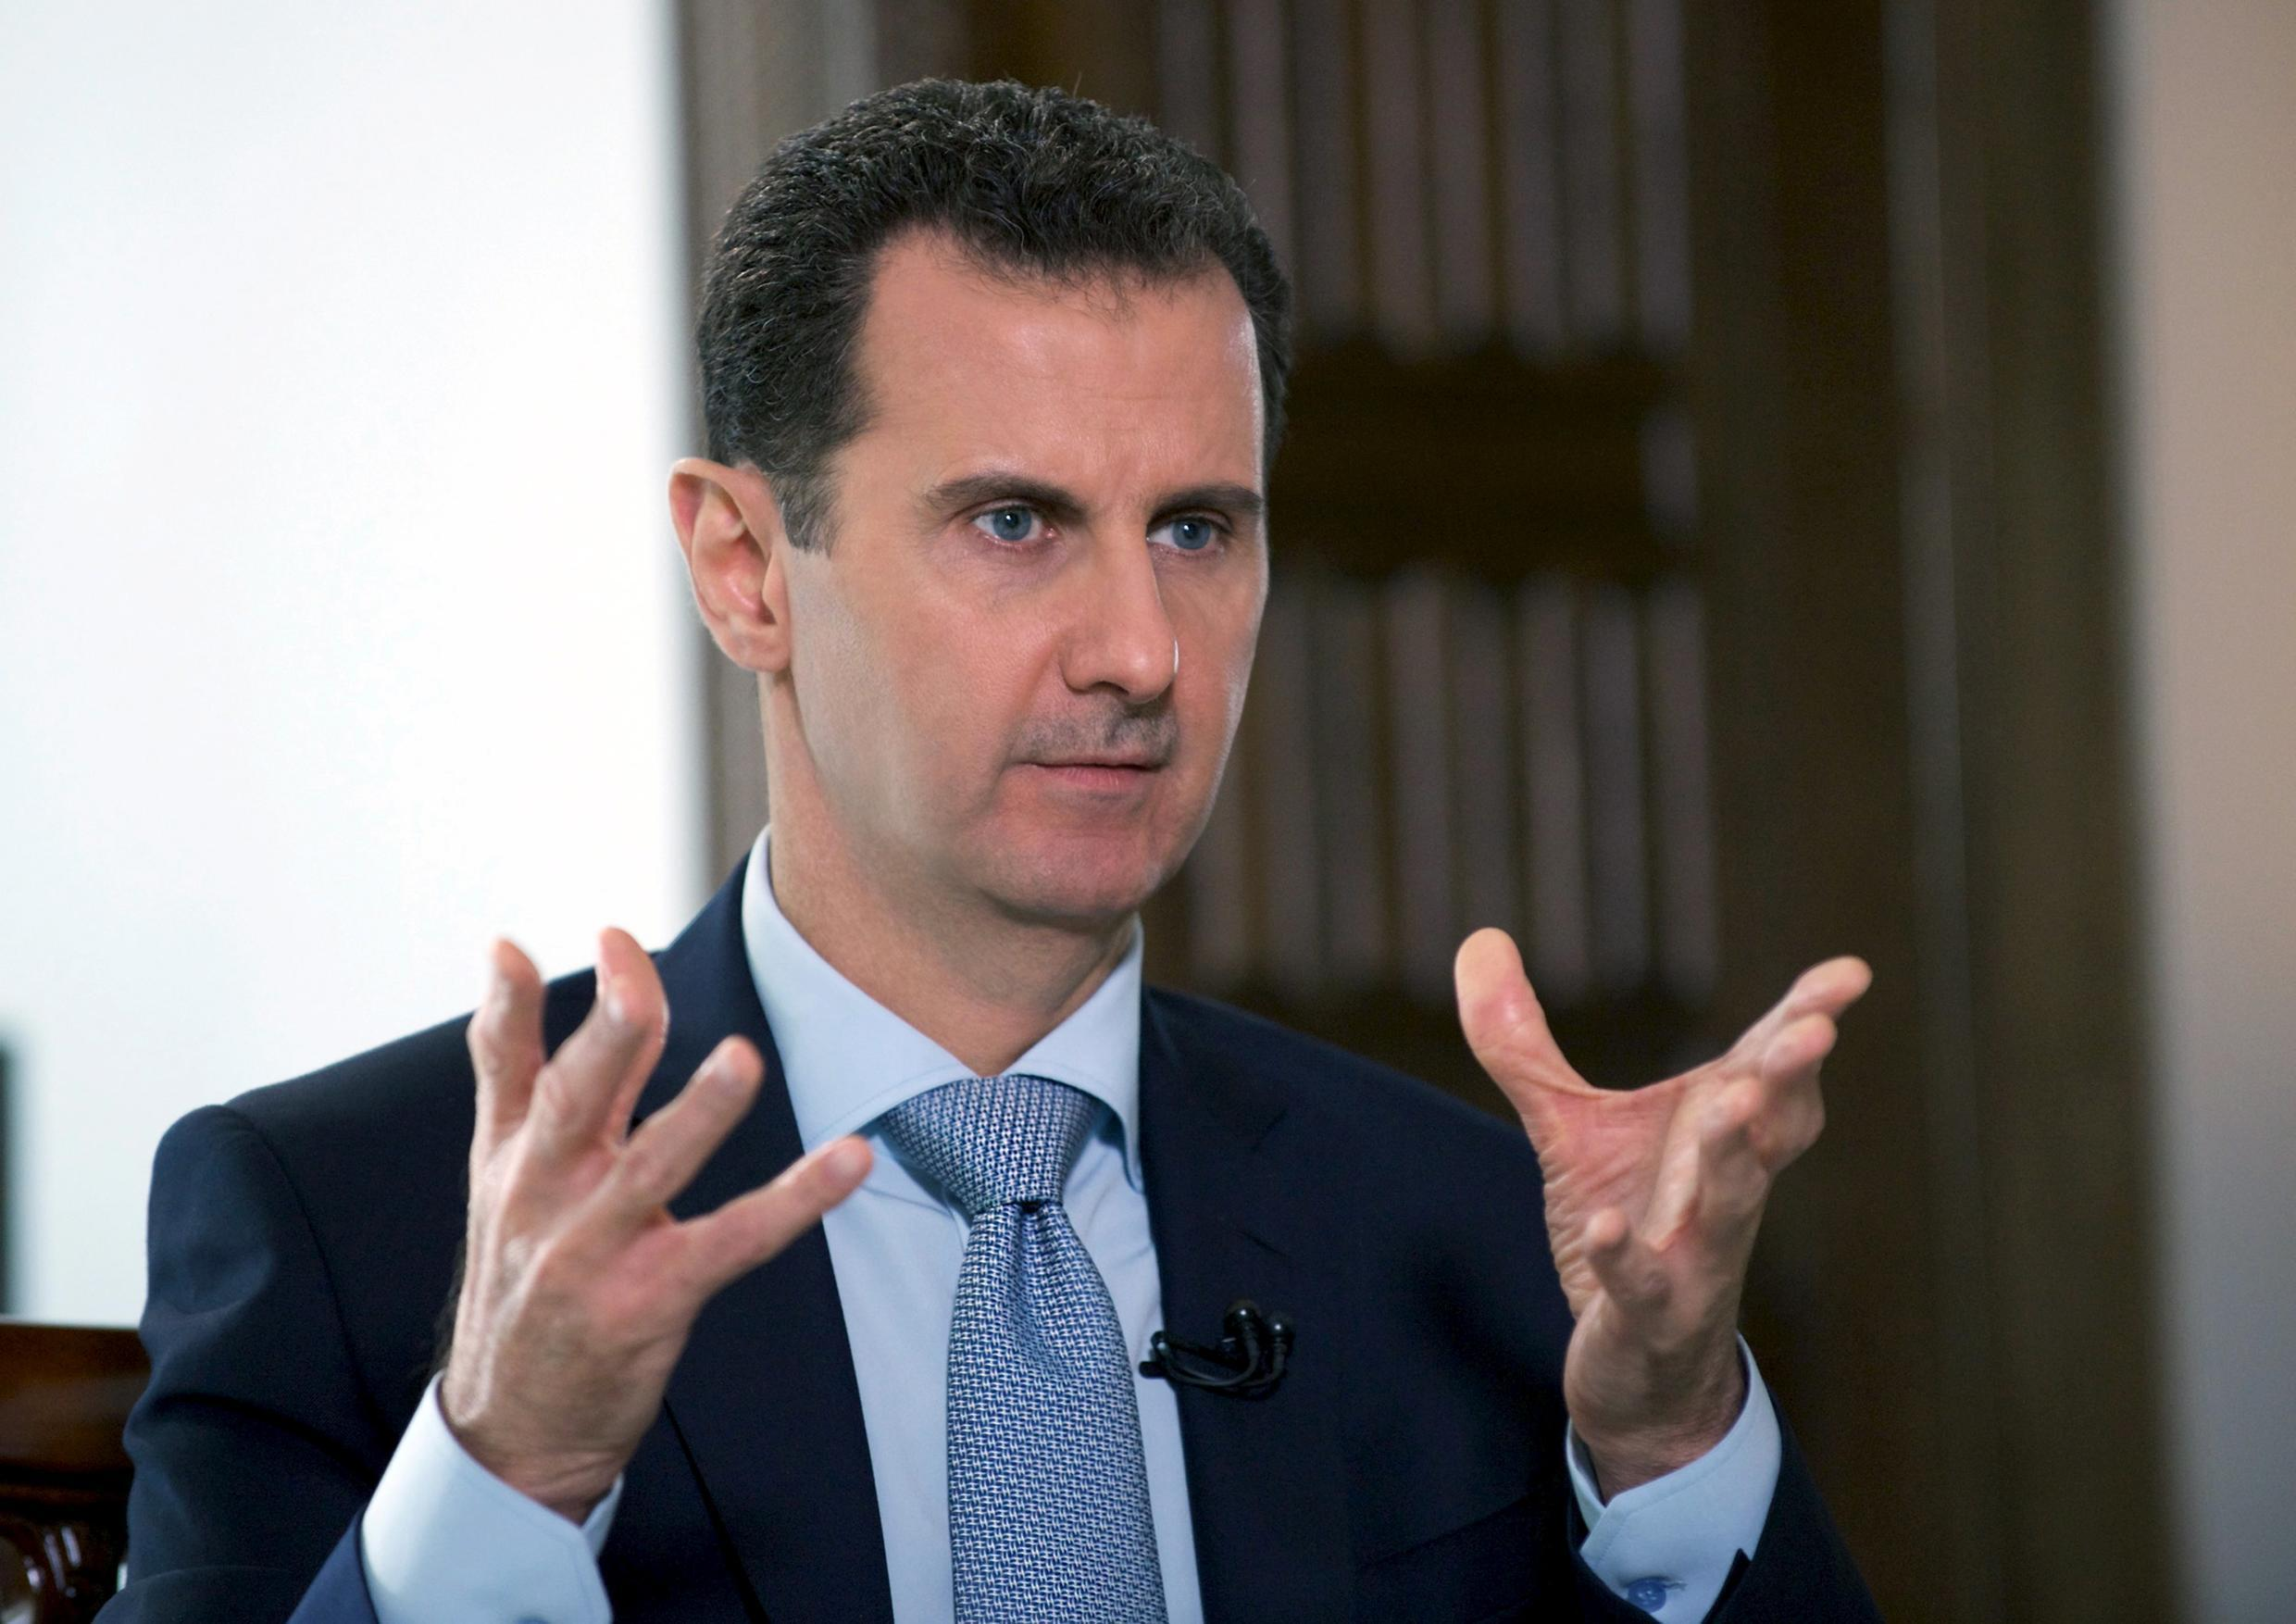 Syria's President Bashar al-Assad speaks during an interview with Russia's RIA news agency, in Damascus, Syria in this handout picture provided by SANA on March 30, 2016.